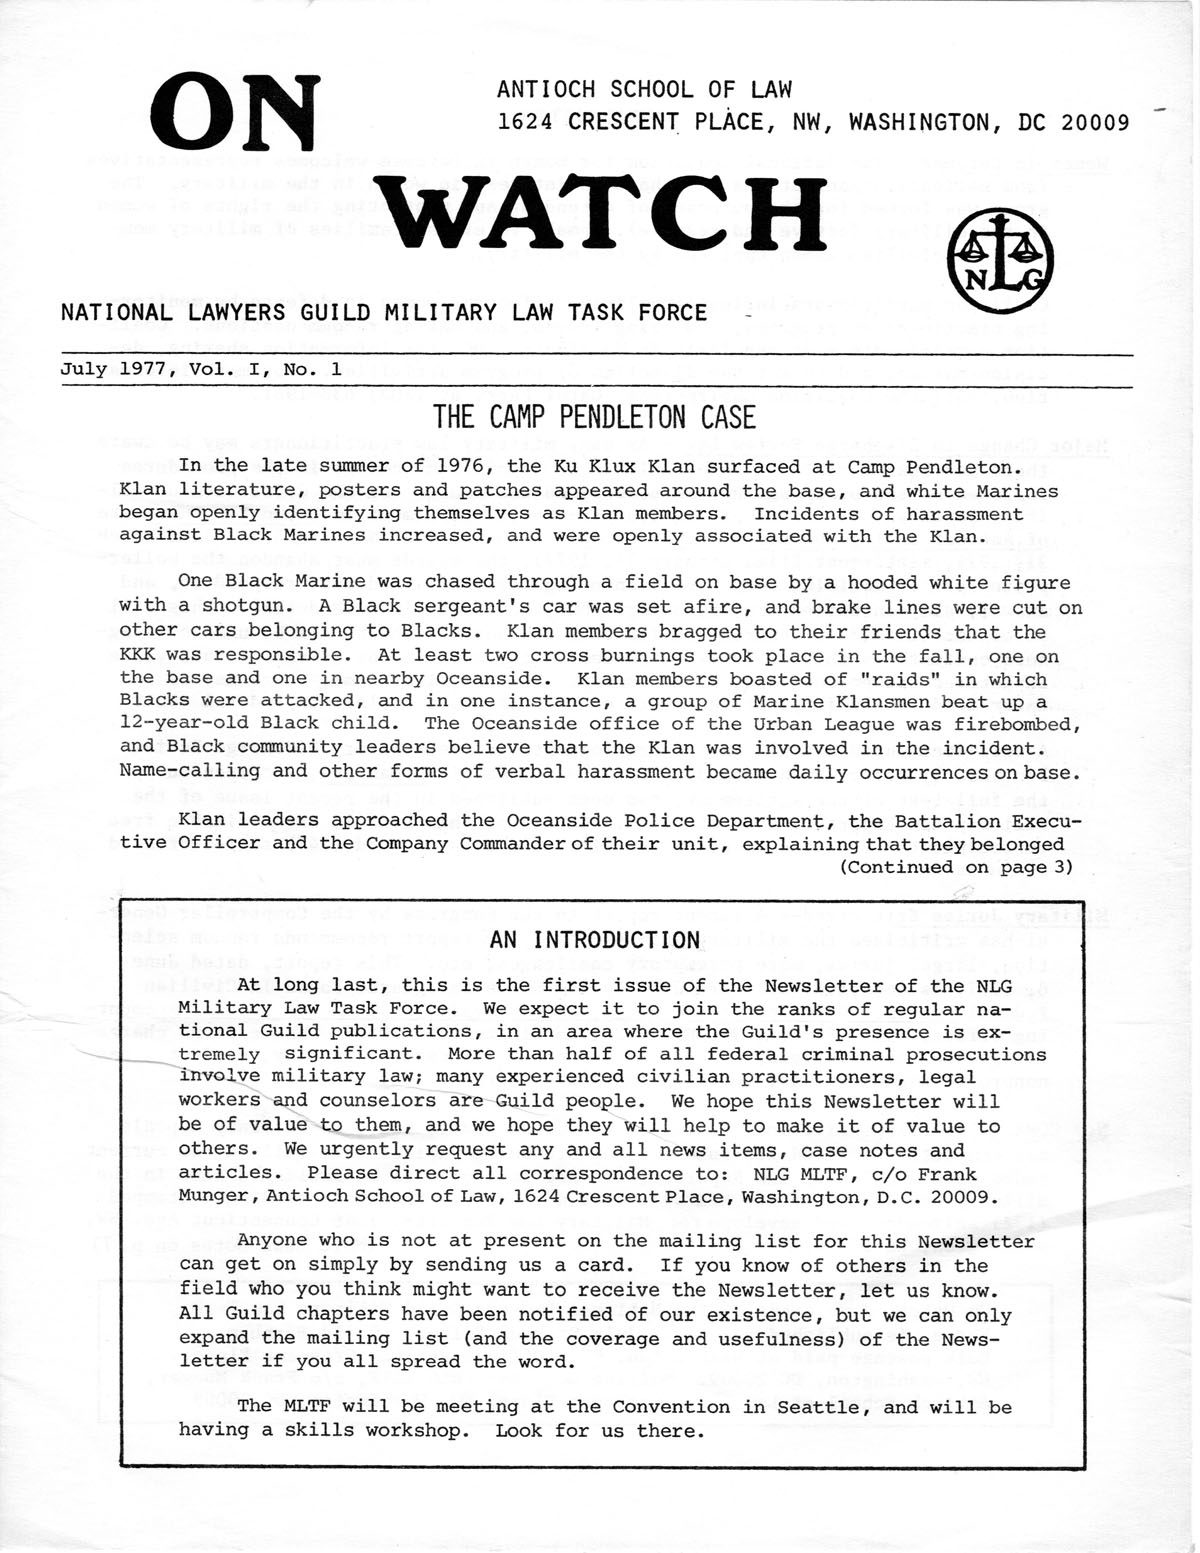 On watch early issues – The Military Law Task Force